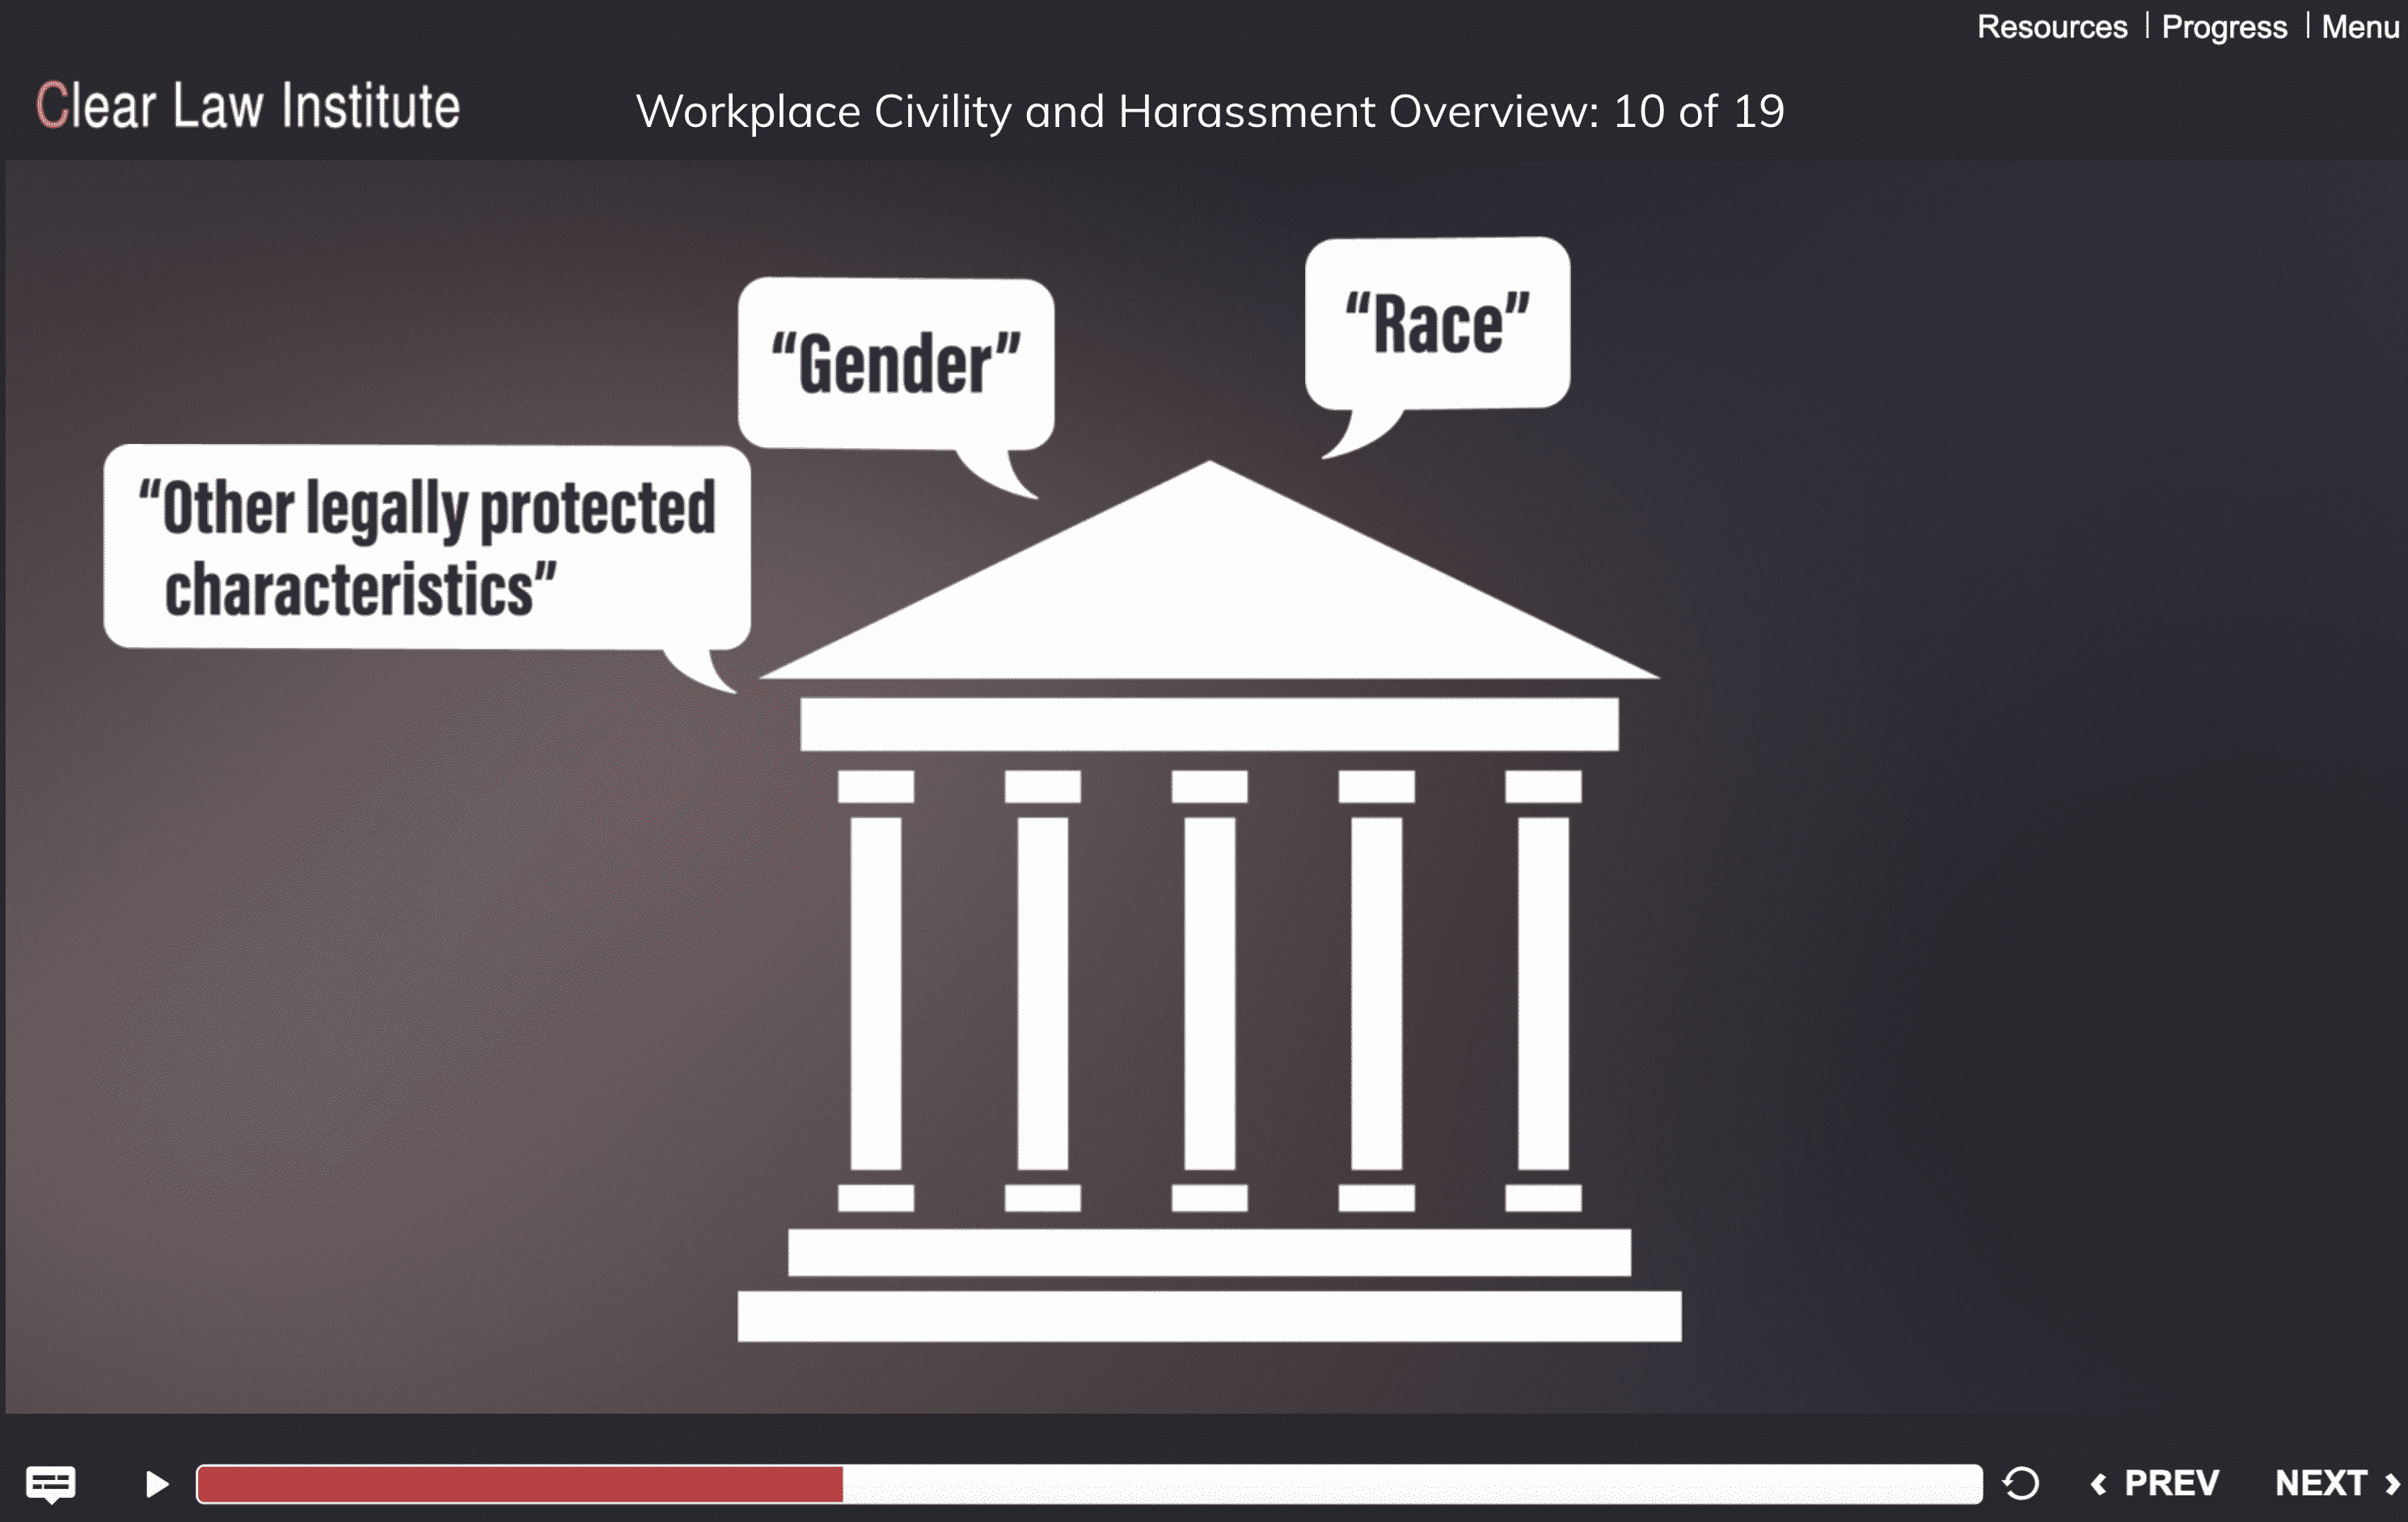 Workplace Civility & Harassment Overview